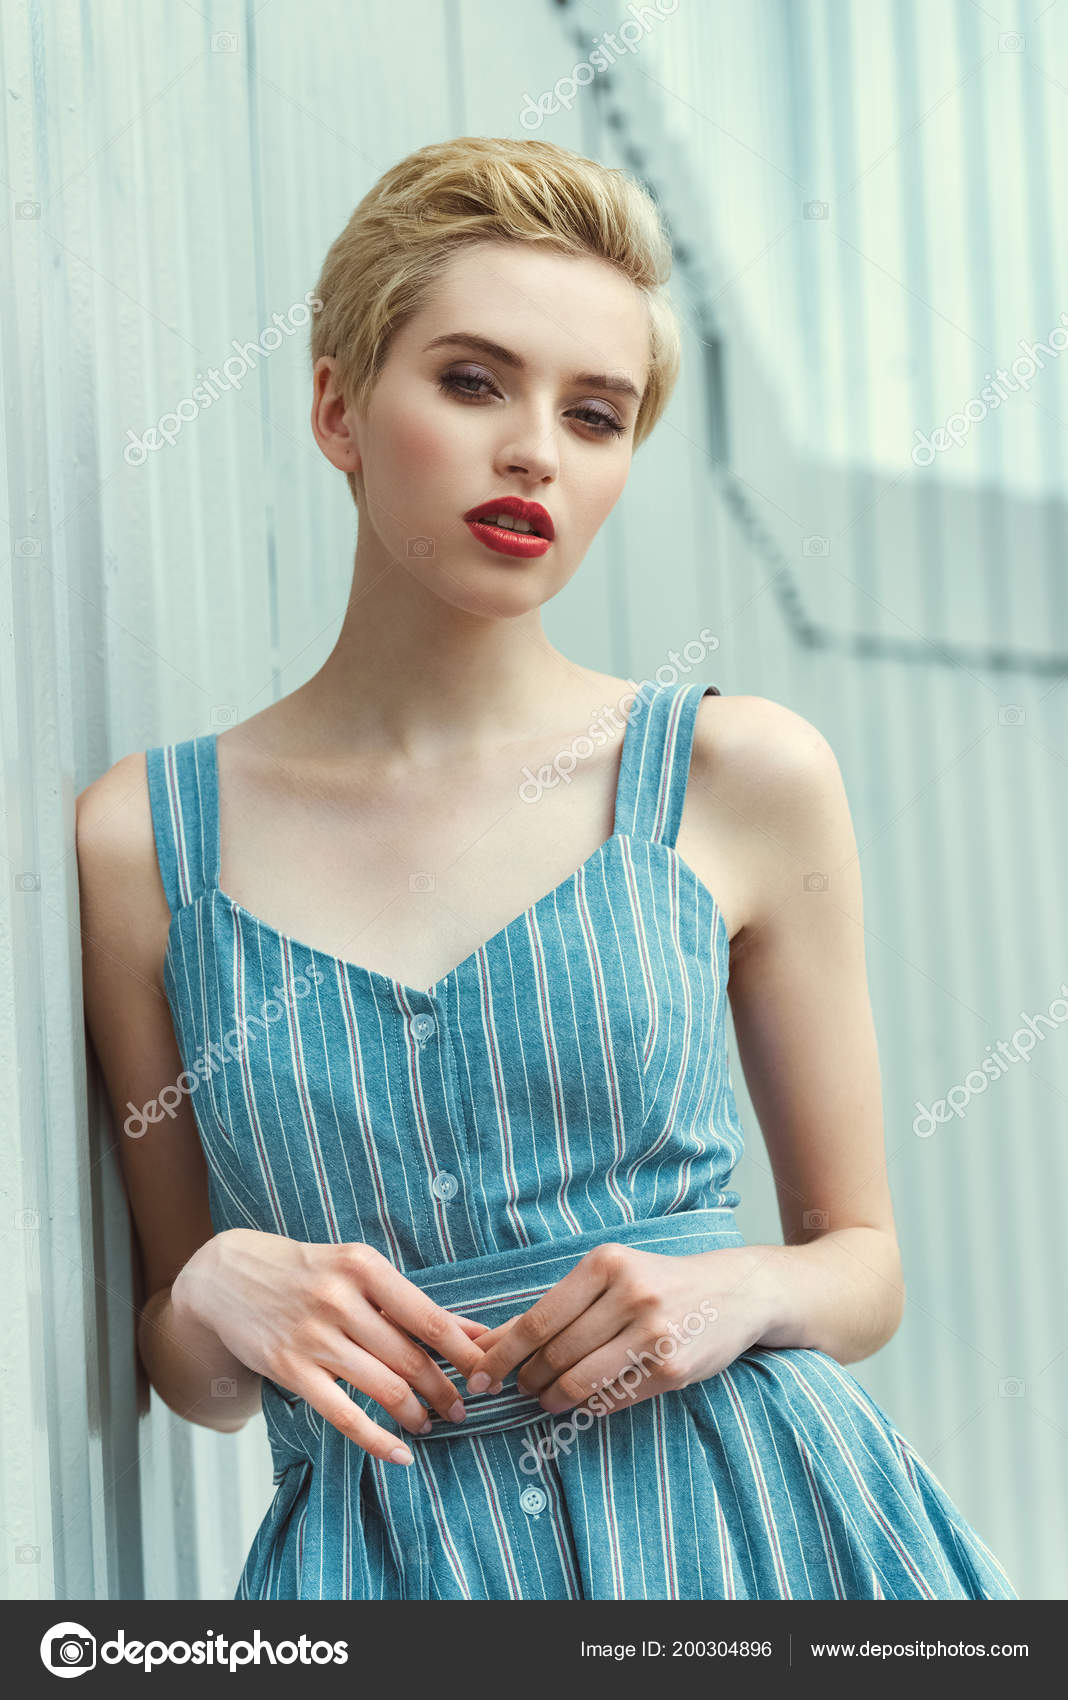 afe7270f36a2 Beautiful Girl Short Hair Posing Trendy Blue Dress — Stock Photo ...